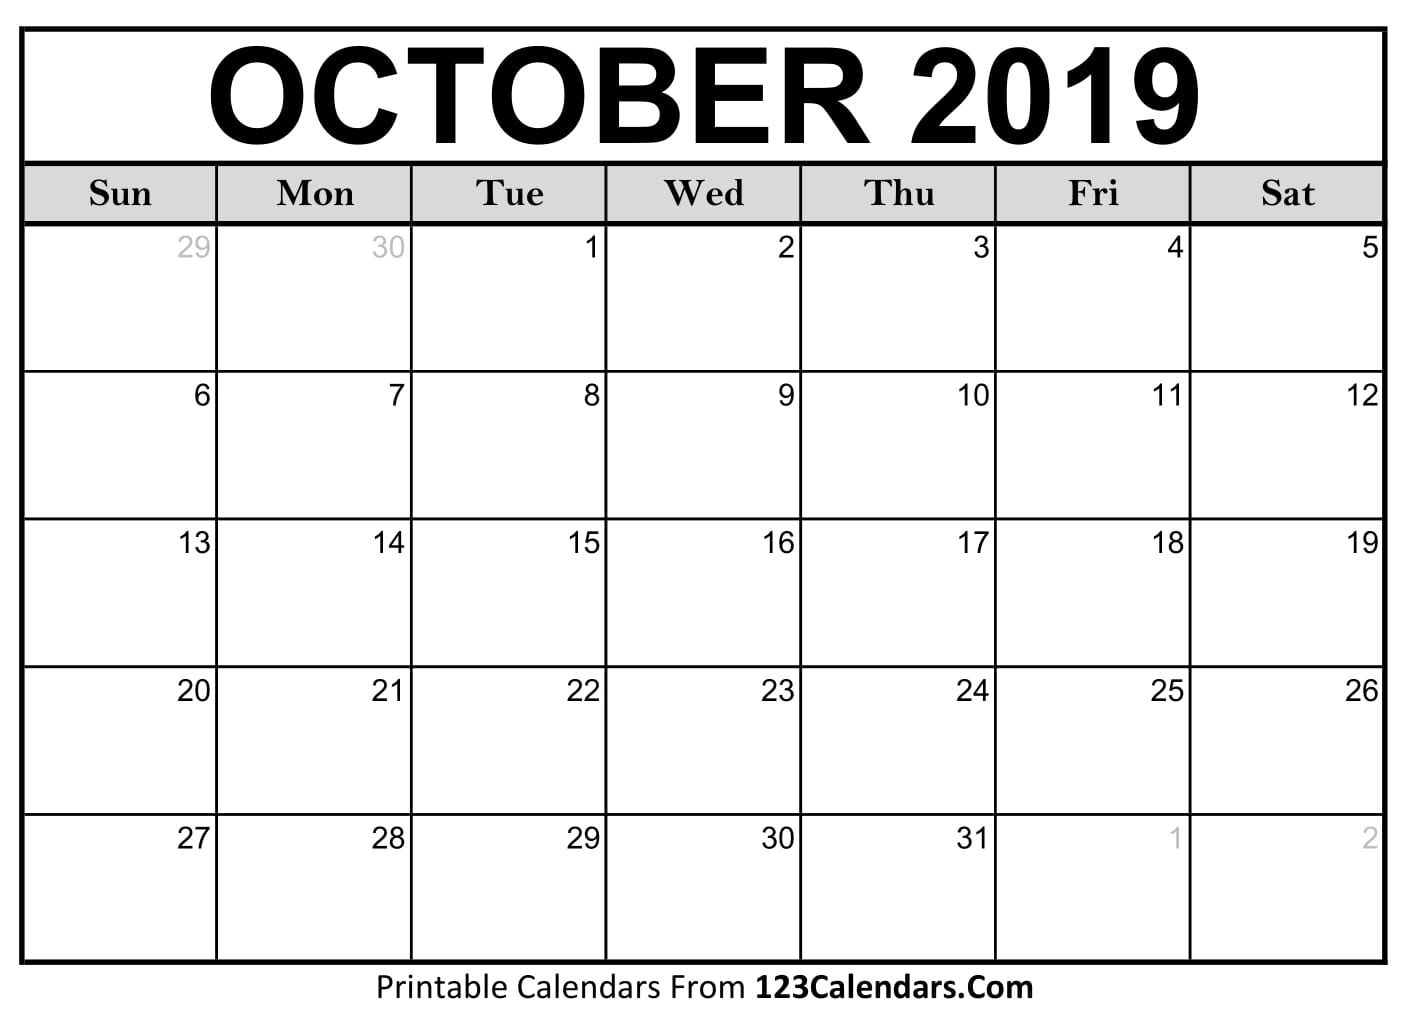 photo about Free Printable October Calendars called Oct 2019 Printable Calendar